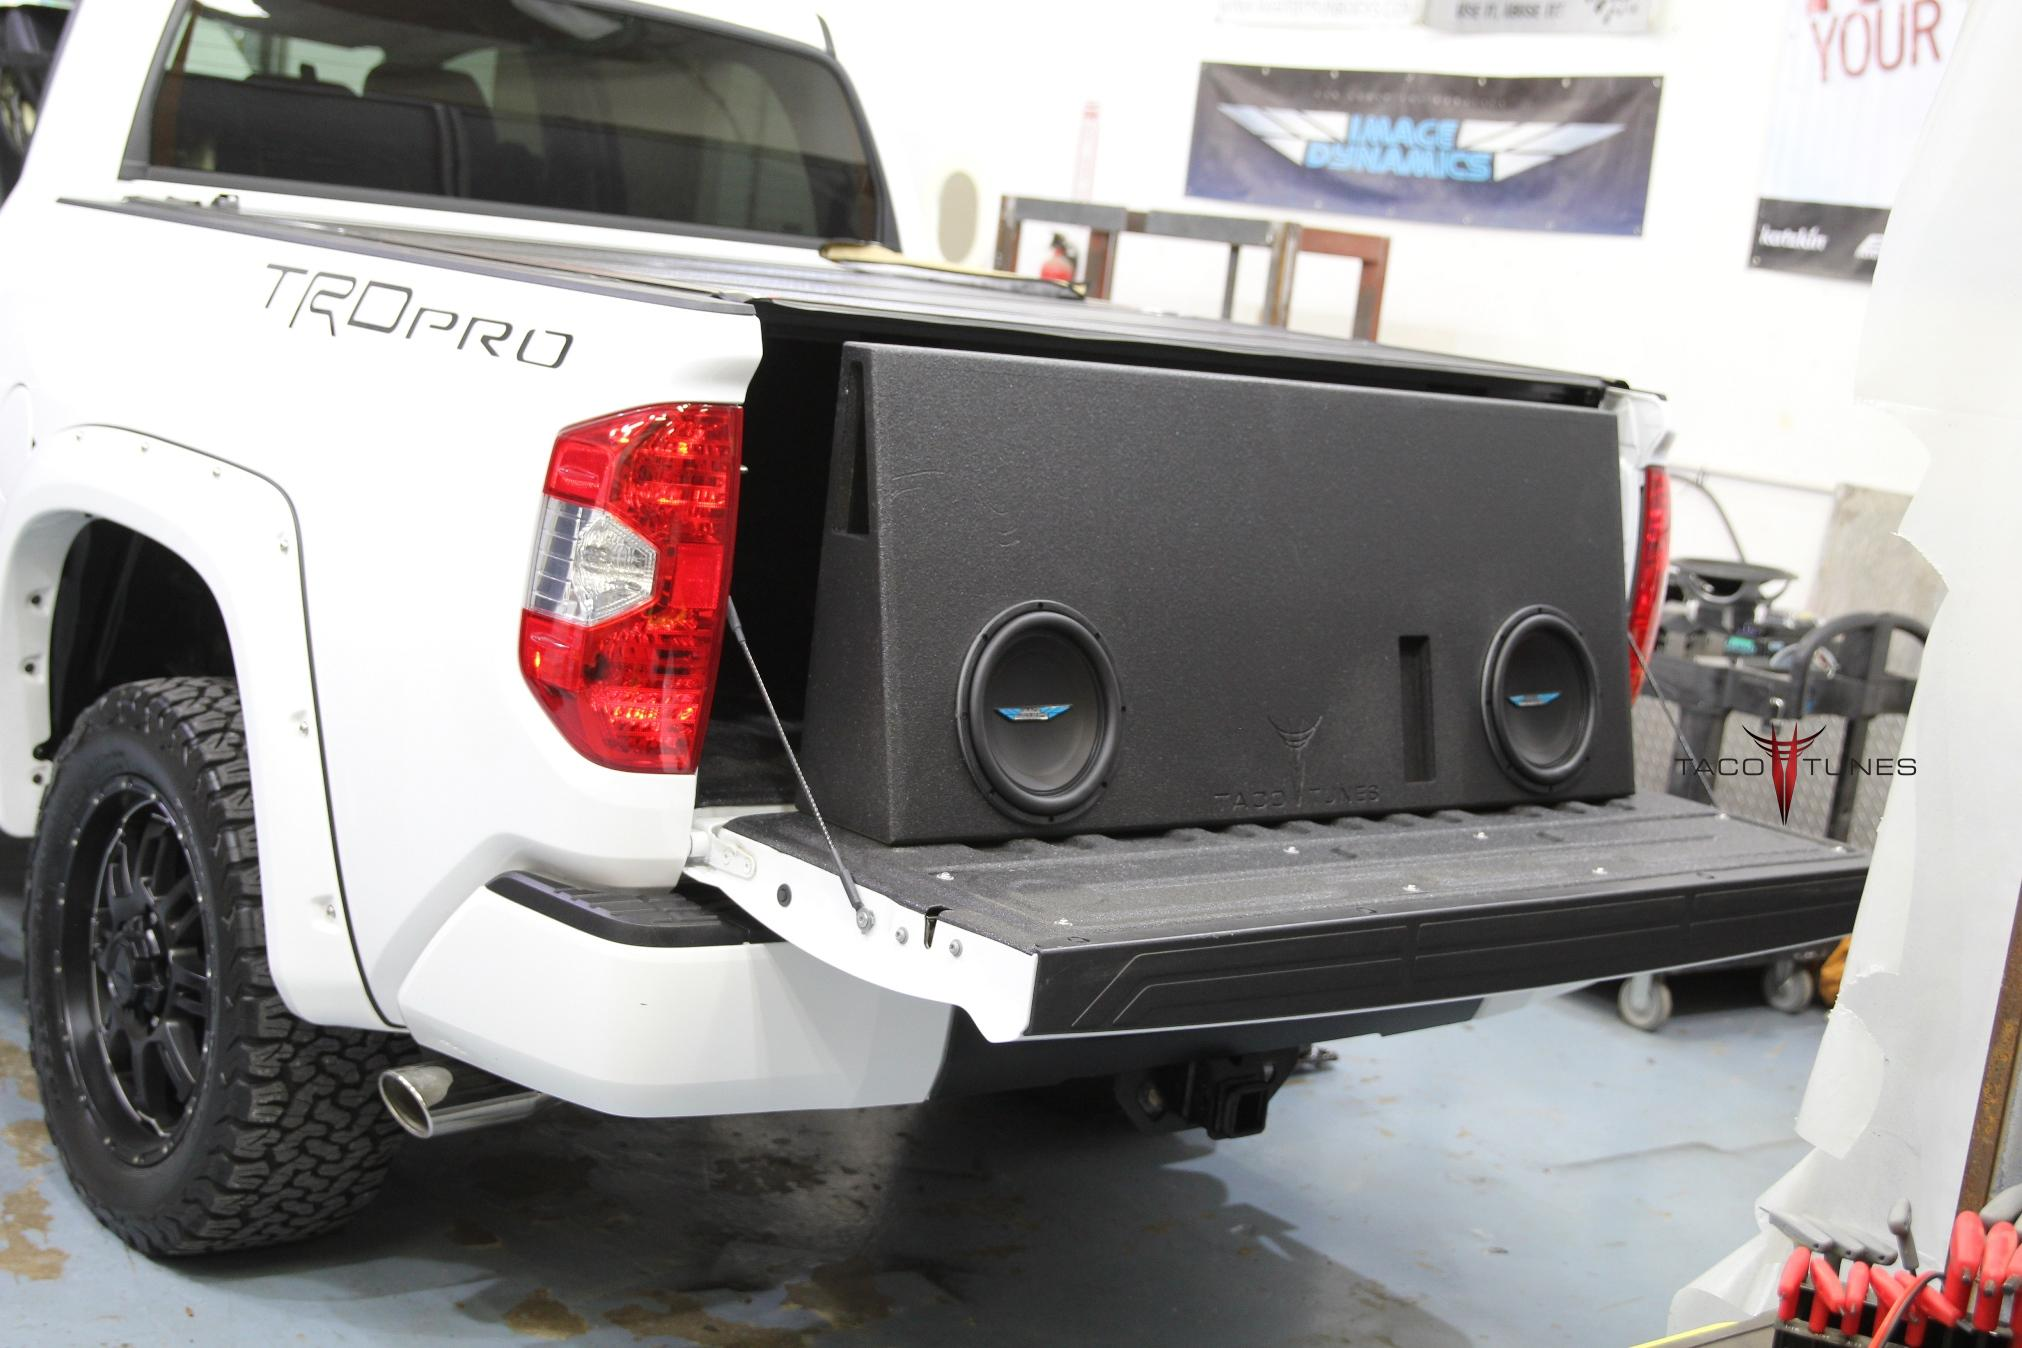 toyota tundra crewmax subwoofer upgrade installation full size 10 subs taco tunes. Black Bedroom Furniture Sets. Home Design Ideas